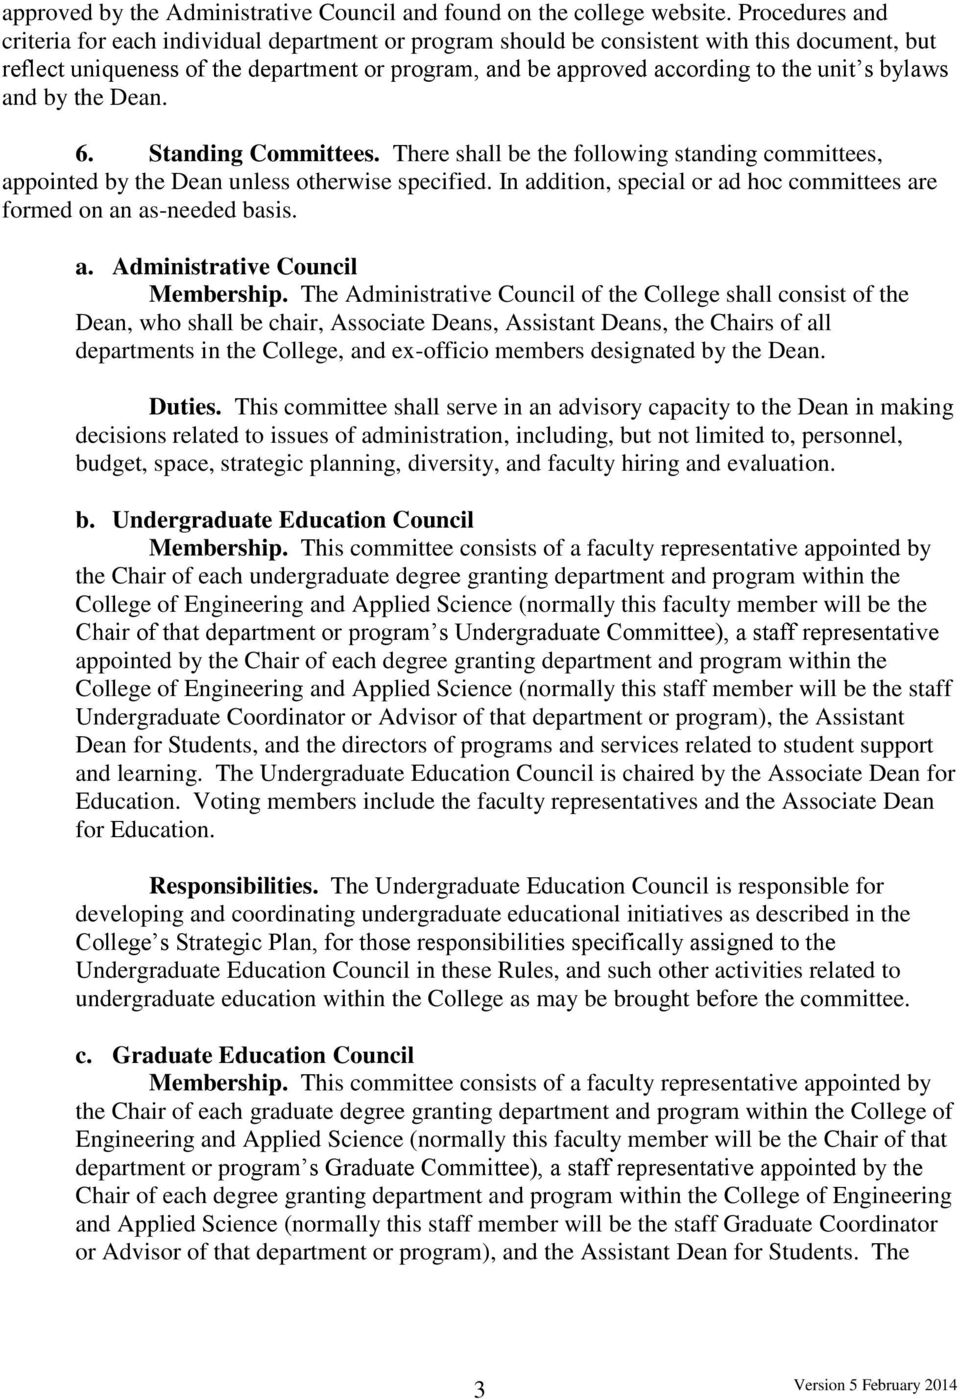 bylaws and by the Dean. 6. Standing Committees. There shall be the following standing committees, appointed by the Dean unless otherwise specified.